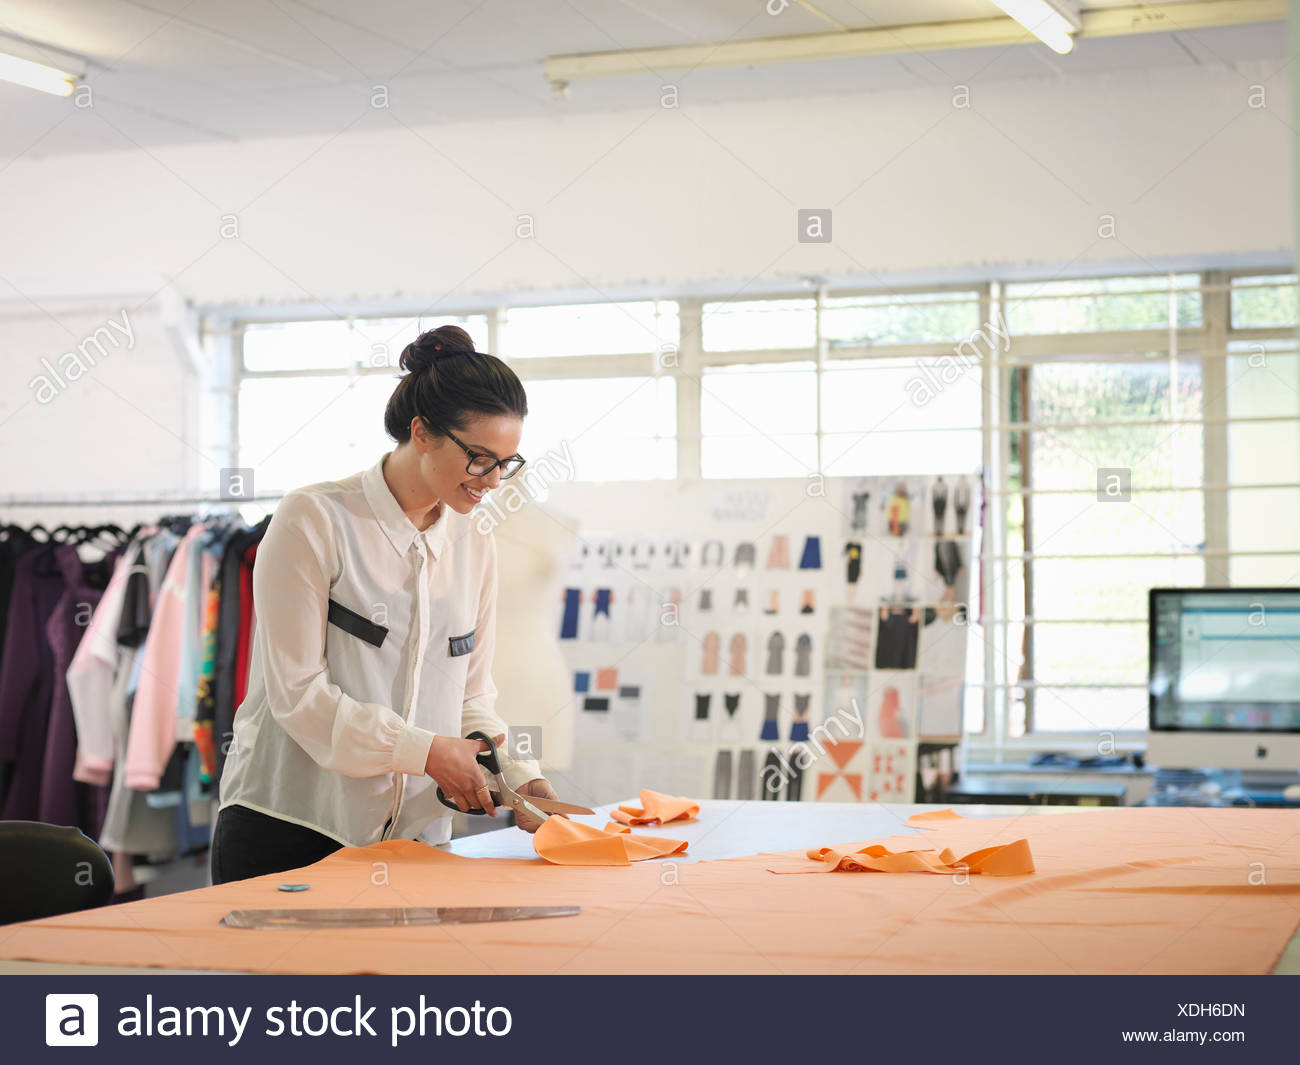 Fashion designer cutting cloth in fashion design studio - Stock Image